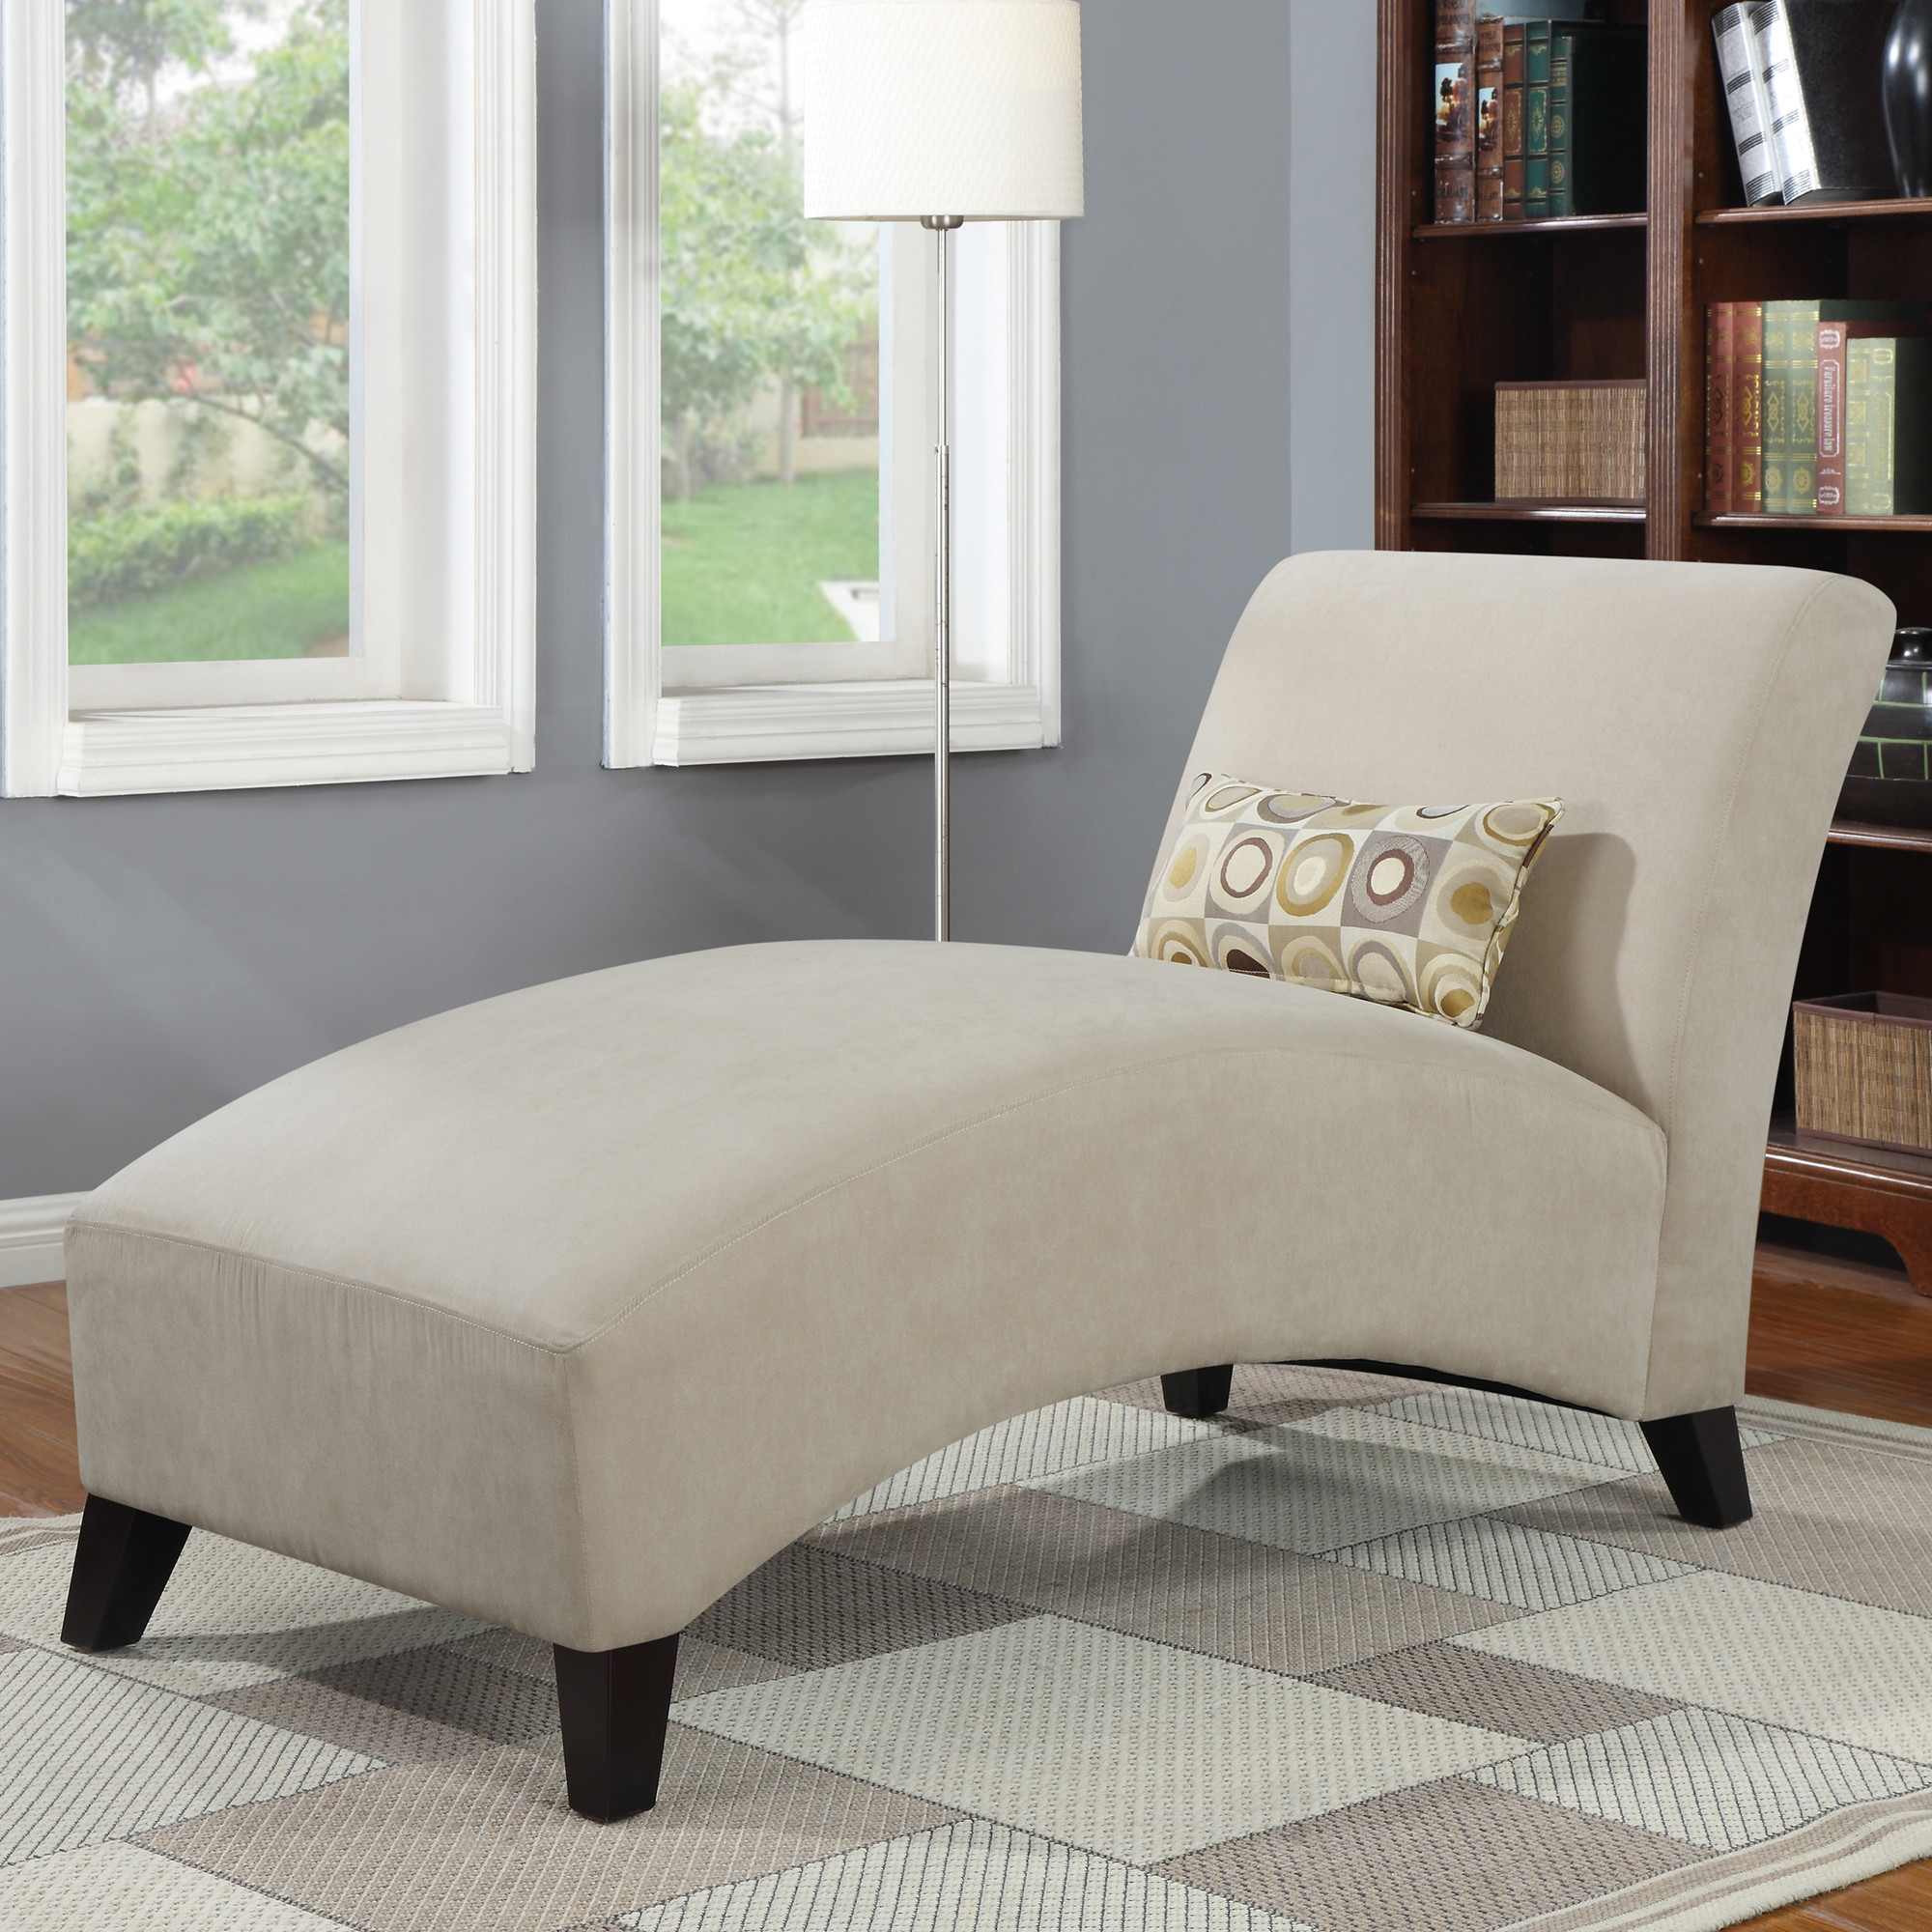 Furniture Microfiber Chaise Lounge For Comfortable Sofa Design Throughout Sofa Chairs For Bedroom (Image 12 of 15)